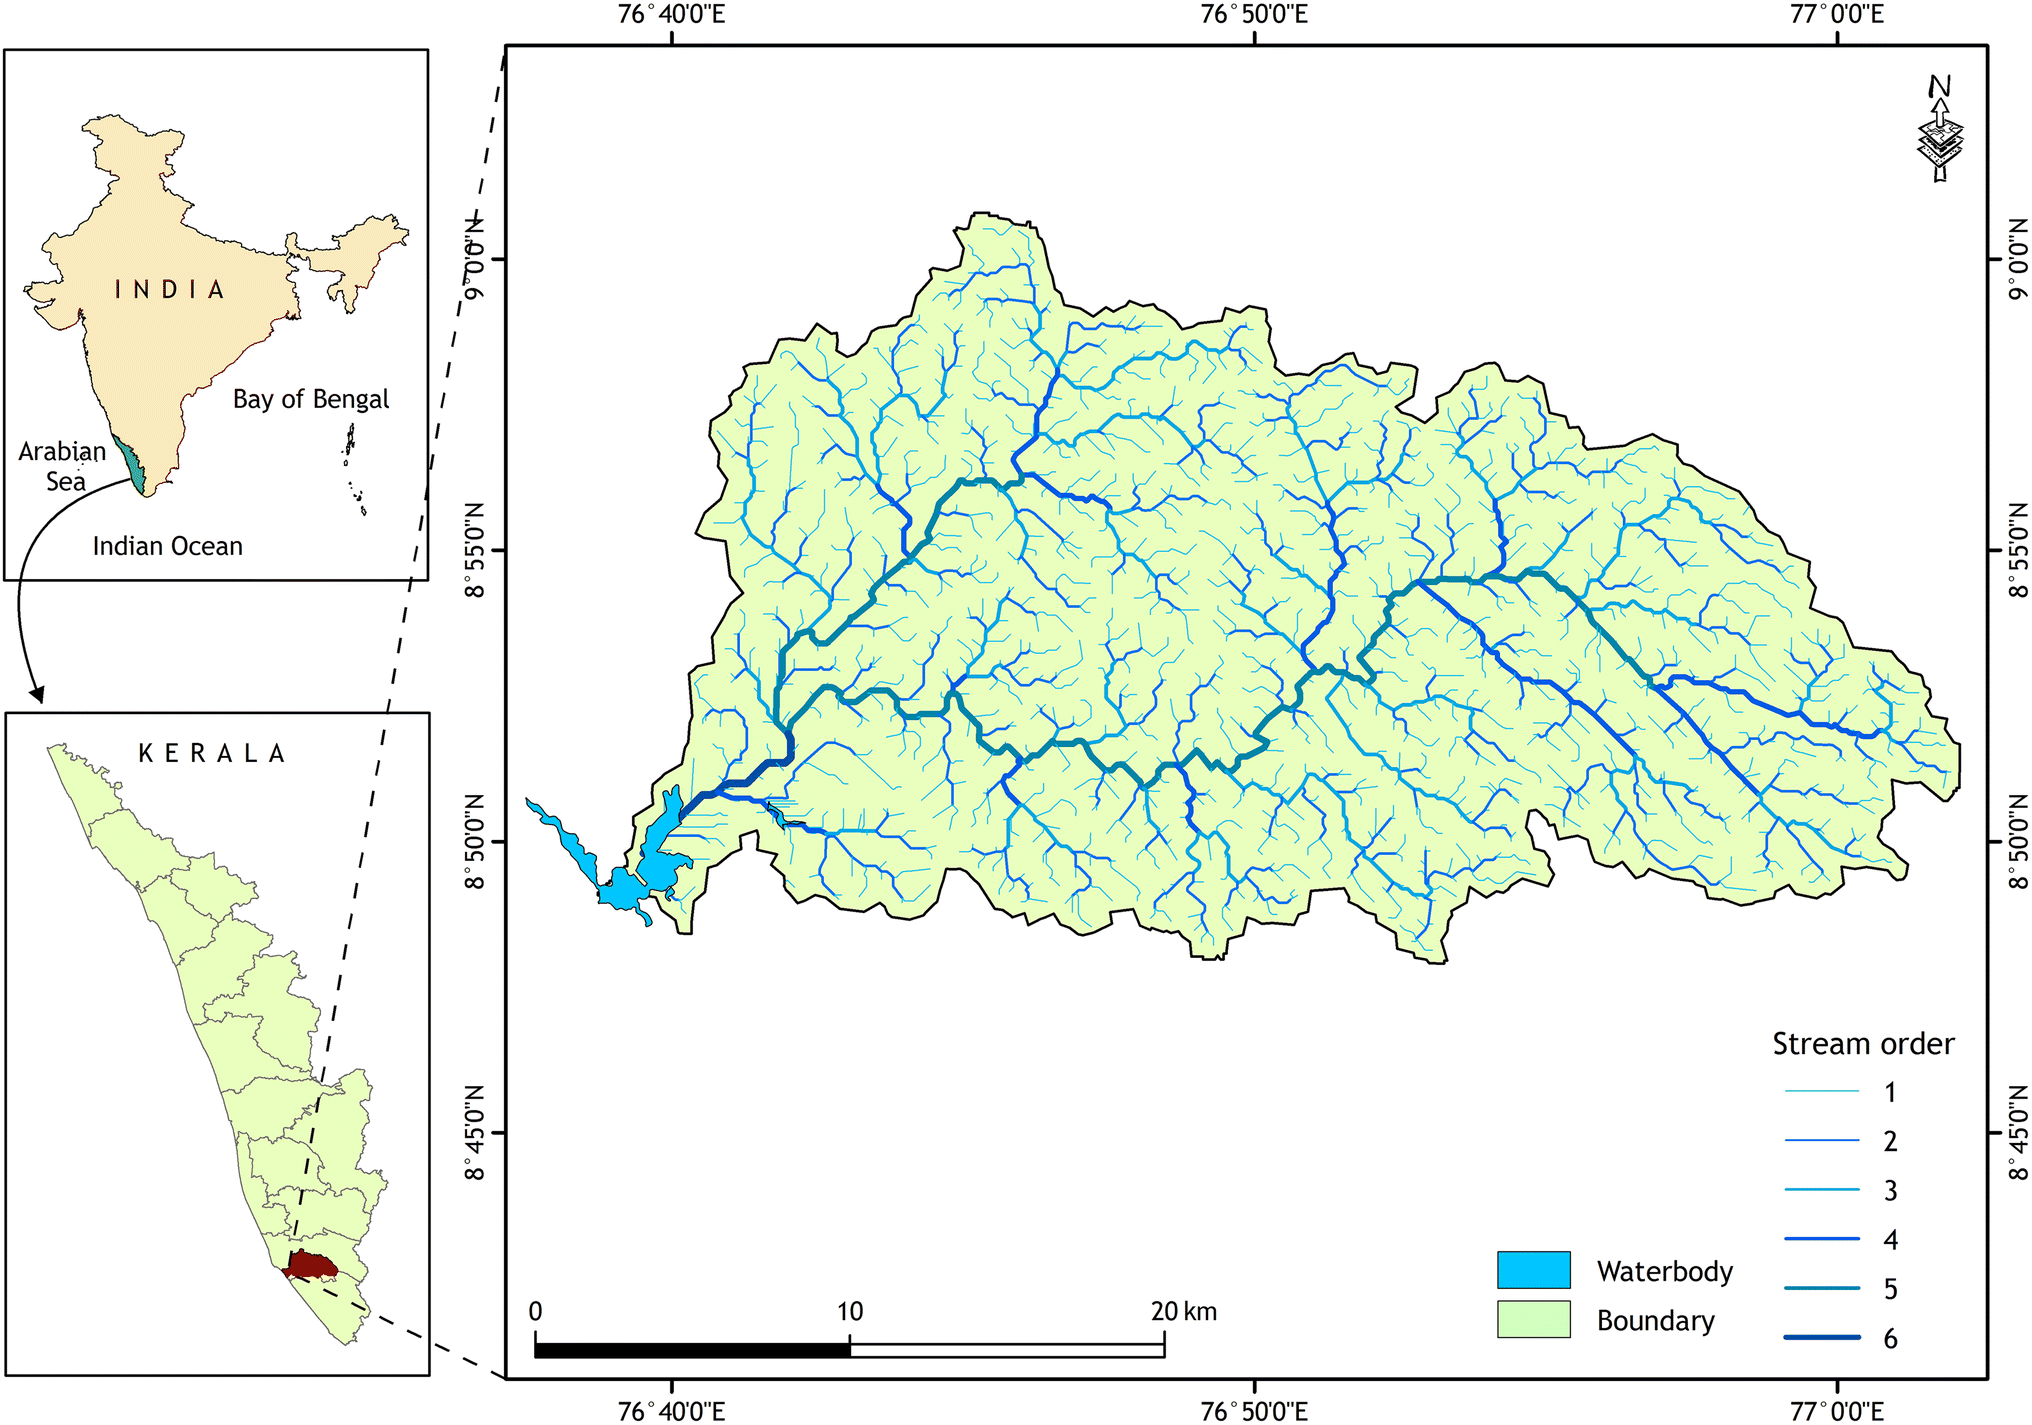 BaDAM Toolbox: A GIS-Based Approach for Automated Drainage